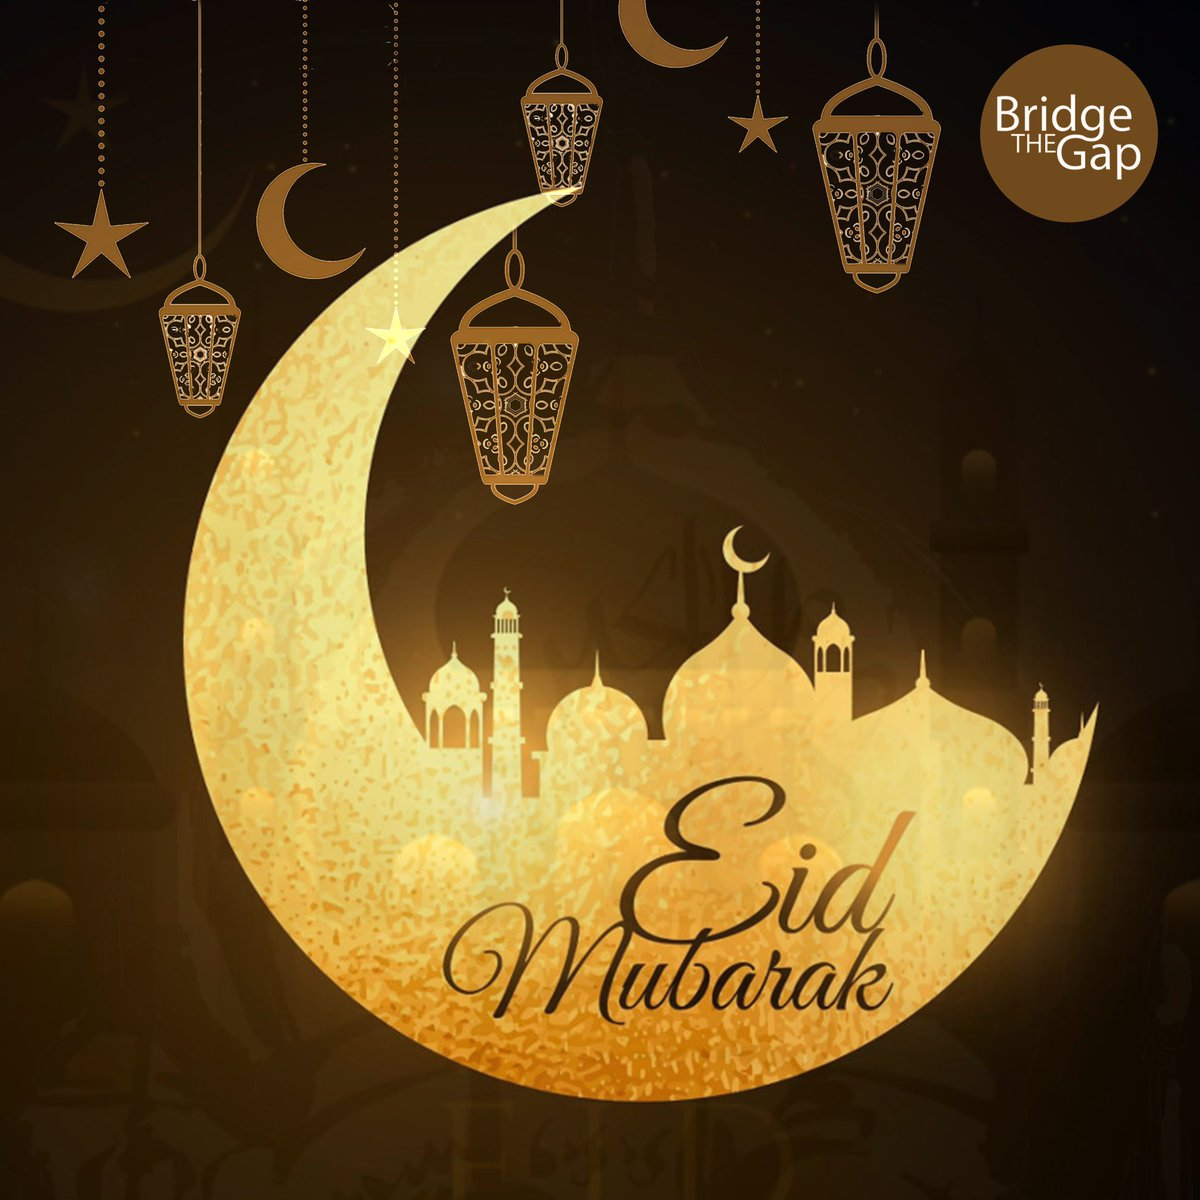 Eld is a day to cheer and to laugh with all your heart. It's a day to be grateful to Allah for all his heavenly blessings.                             Eld Mubarak.  #eld #celebration #gratefulmoment #festival #Endof Ramadan #DayofCelebration #deen #allah #ummah #junnahpic.twitter.com/rlzW2bs8uL